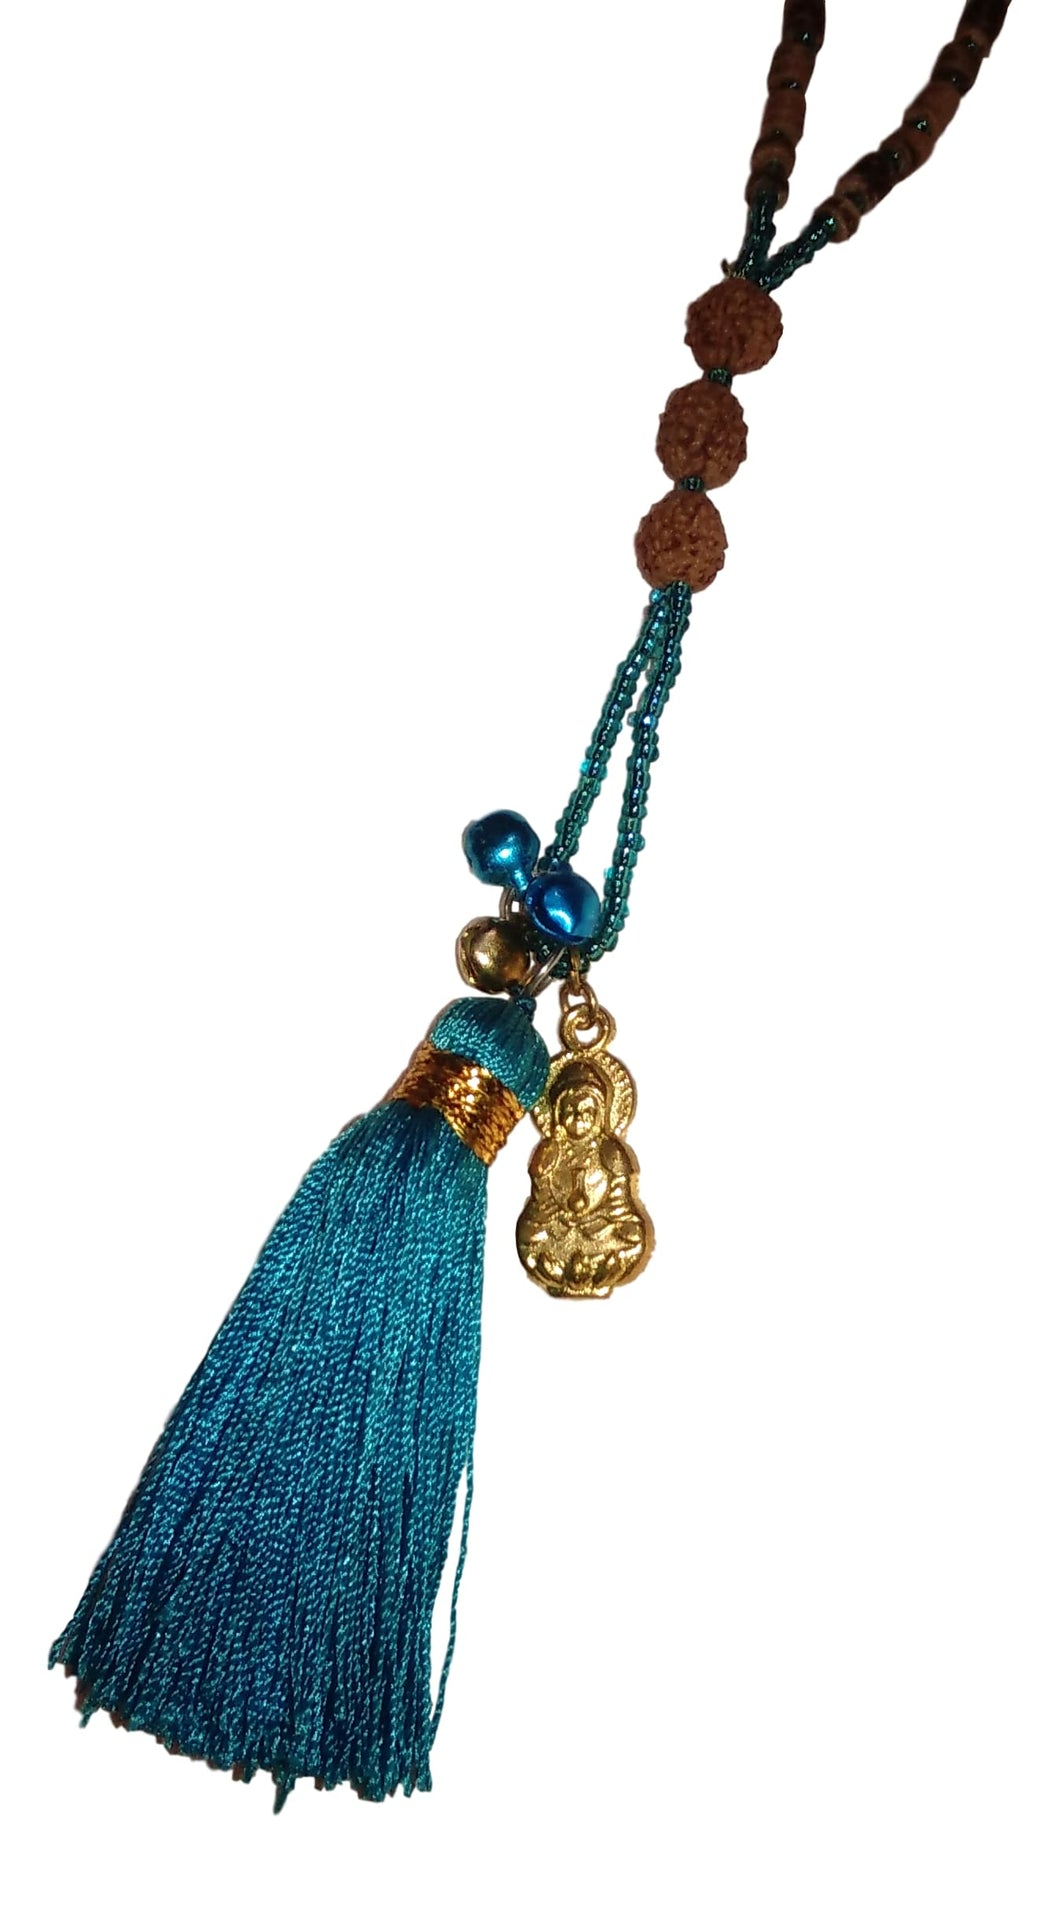 Jewelry - Mala Necklace with Buddha, Bells, and Tassel - Turquoise